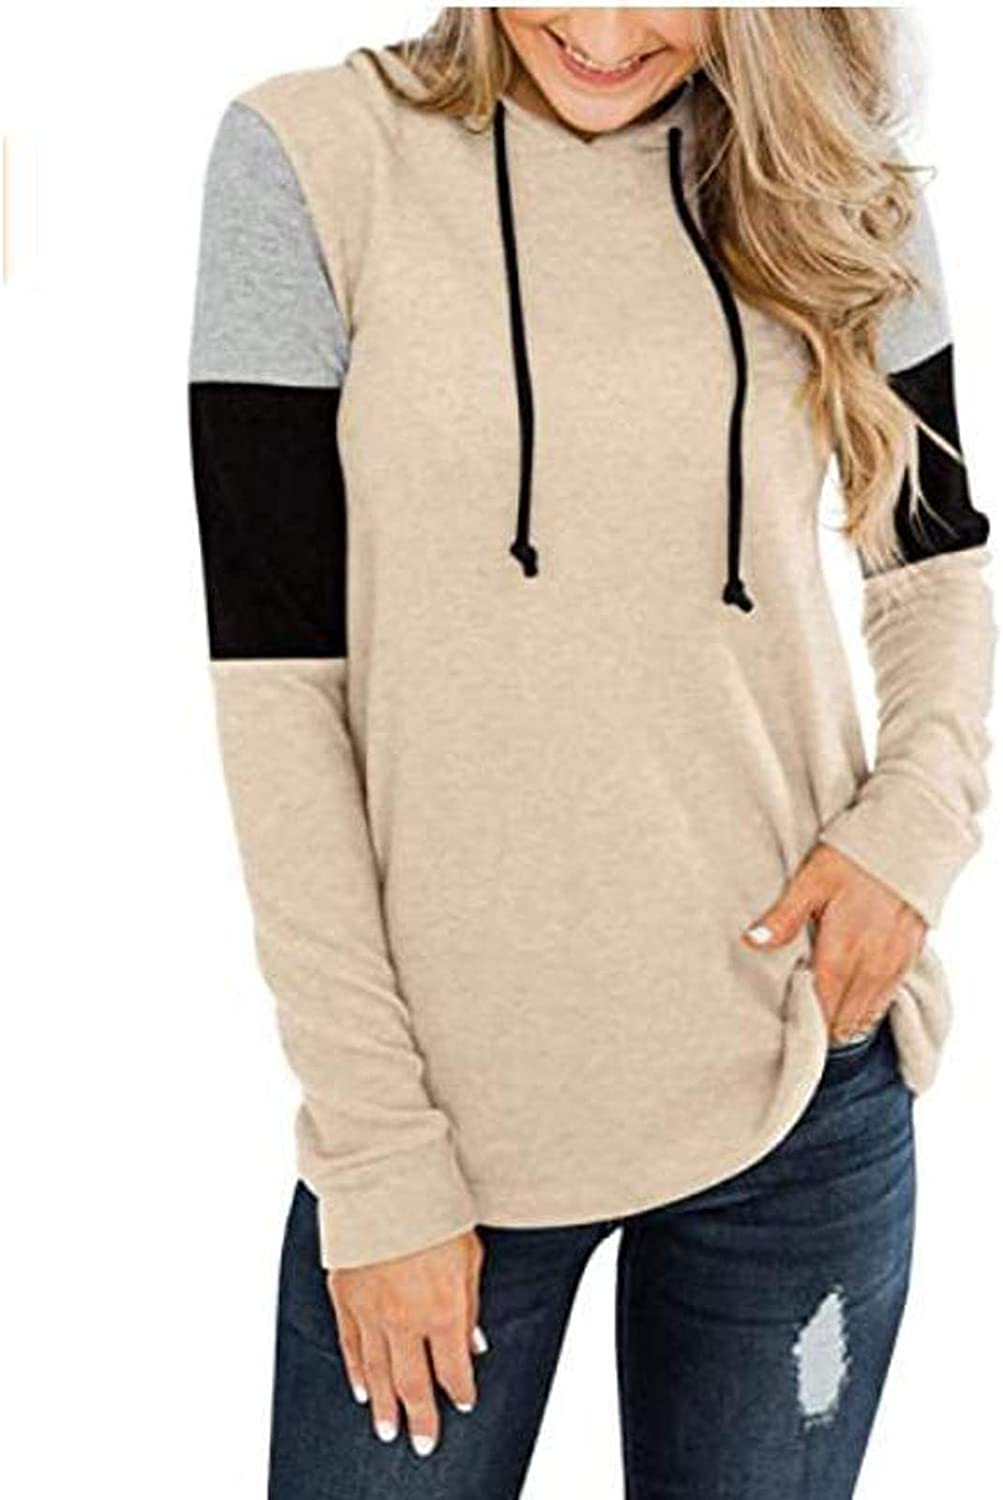 PLENTOP Lightweight Coat Women'S Long Sleeve Cable Knit Cardigans Open Front Loose Sweater Outwear with Pockets